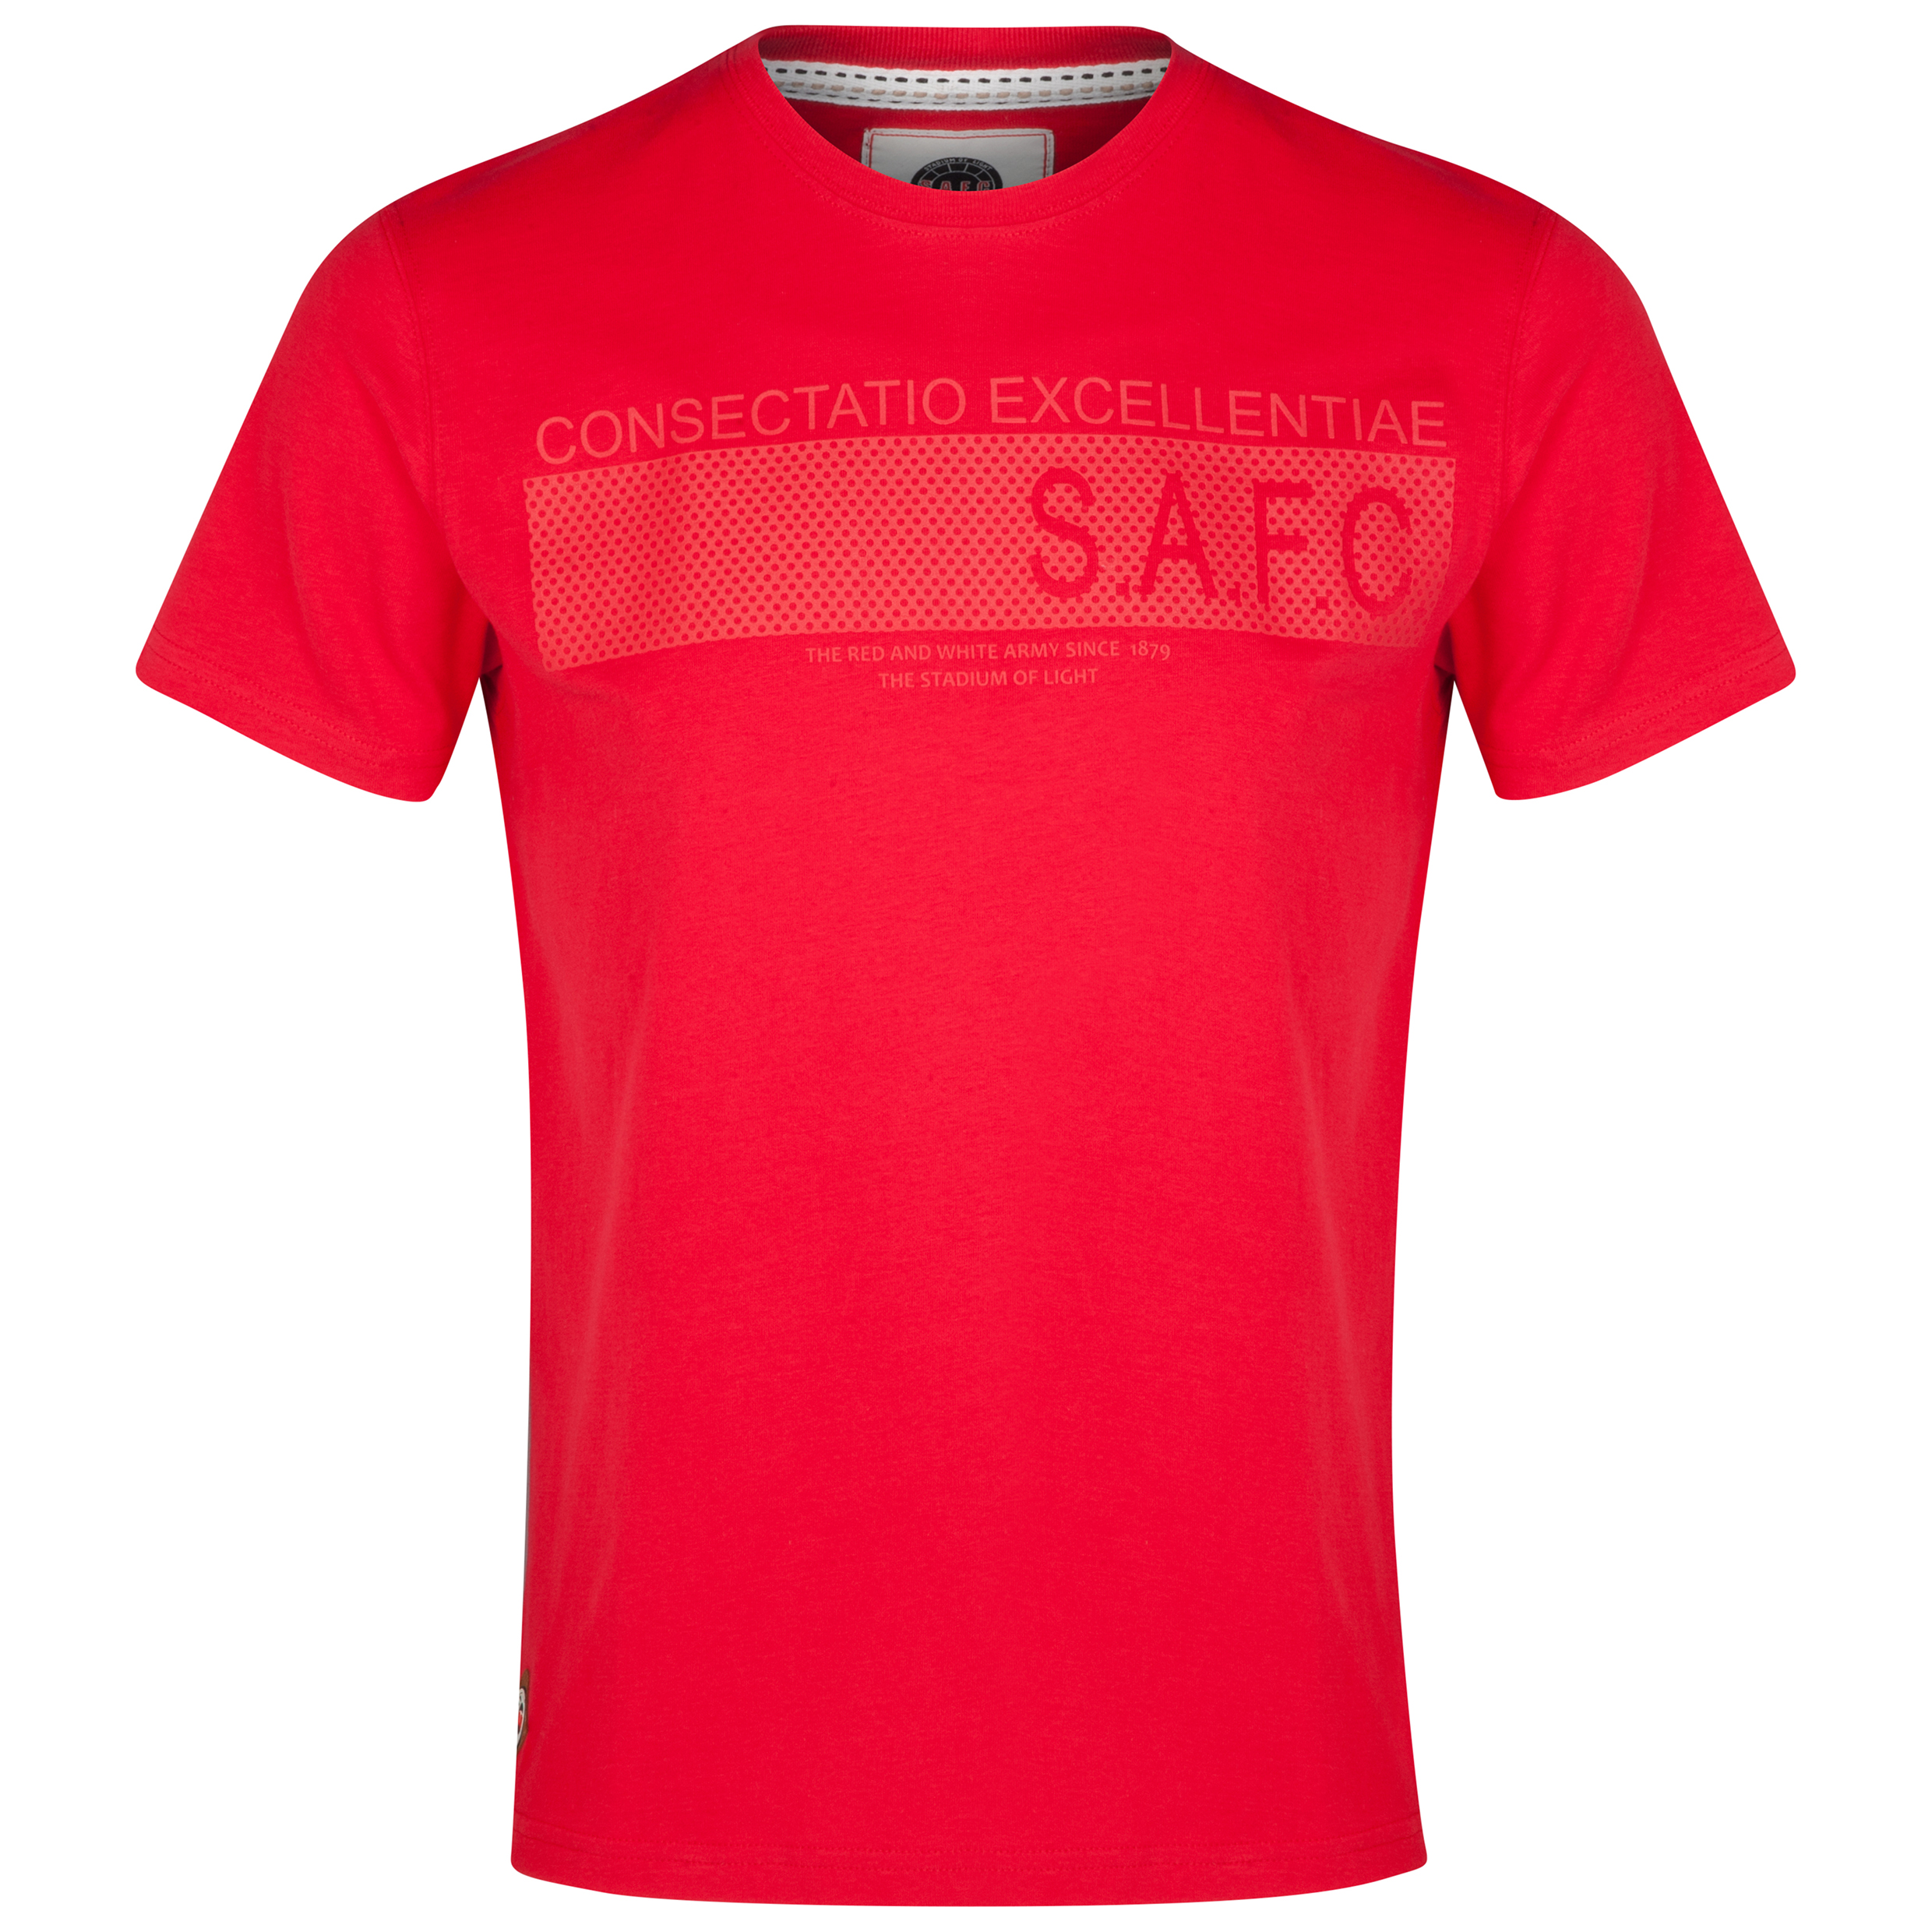 Sunderland T Shirt- Red - Mens